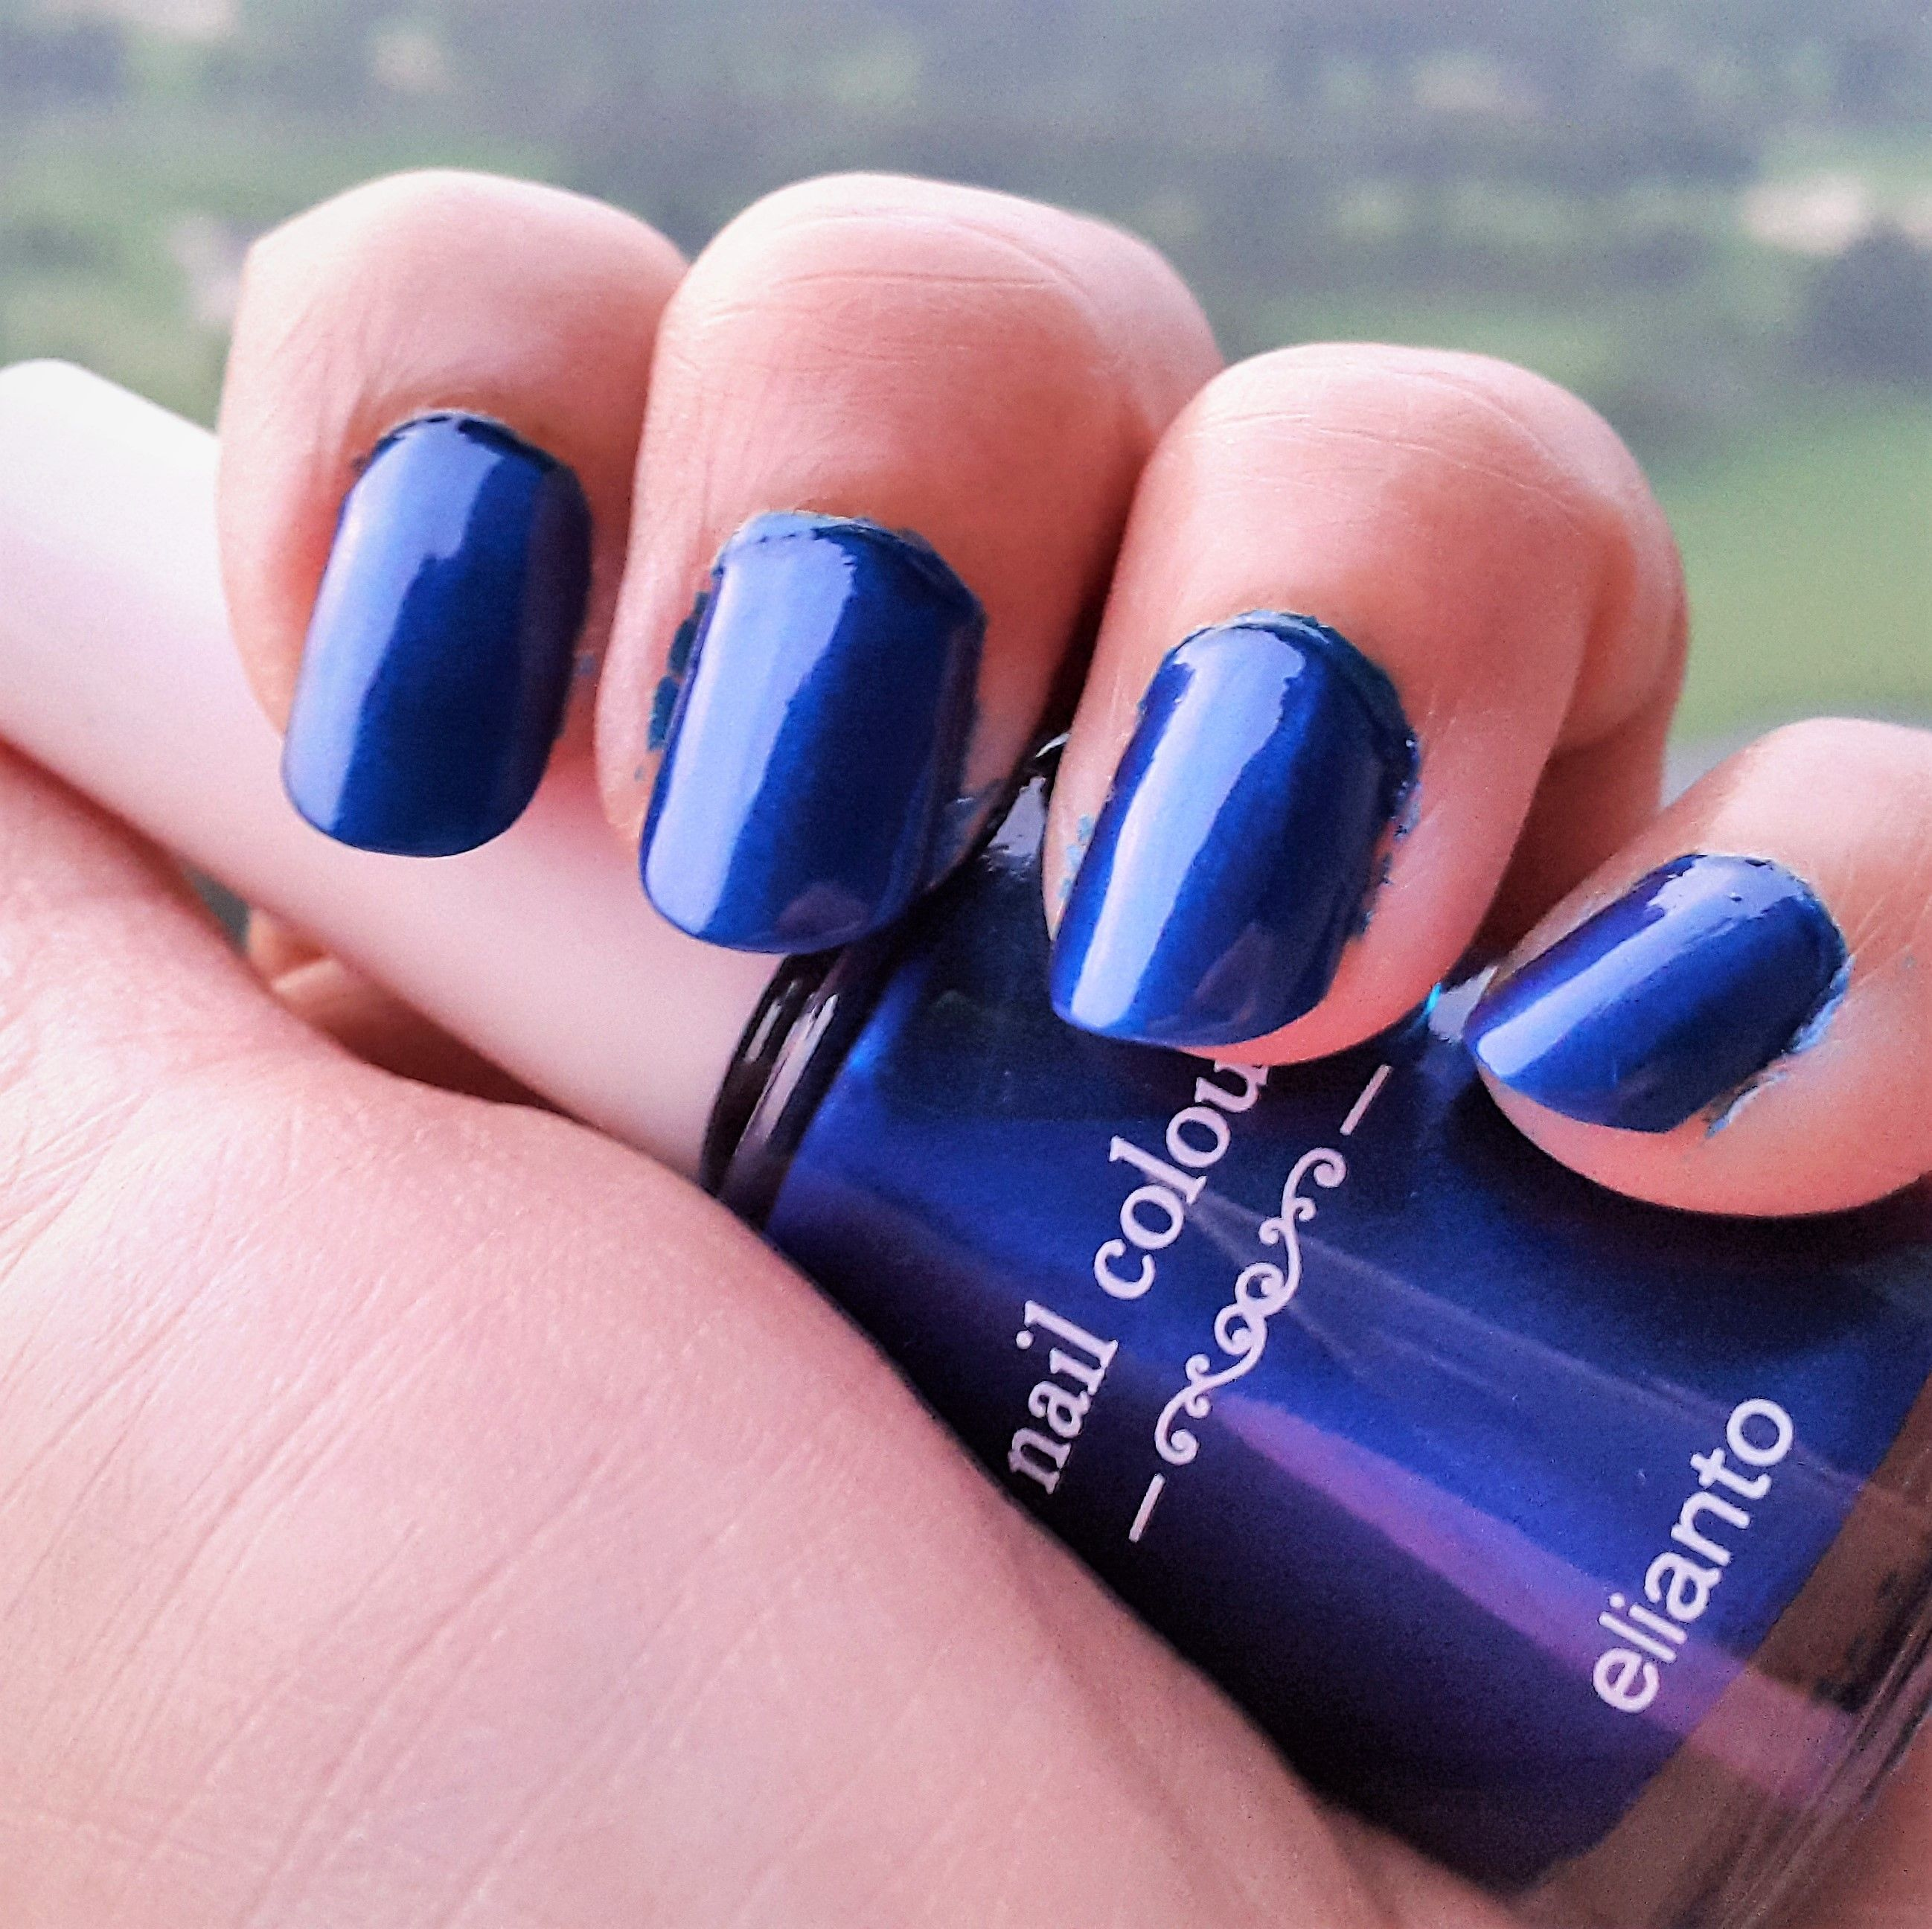 Elianto a Korean Brand nail polish in the shade - No.29 - Blue ...